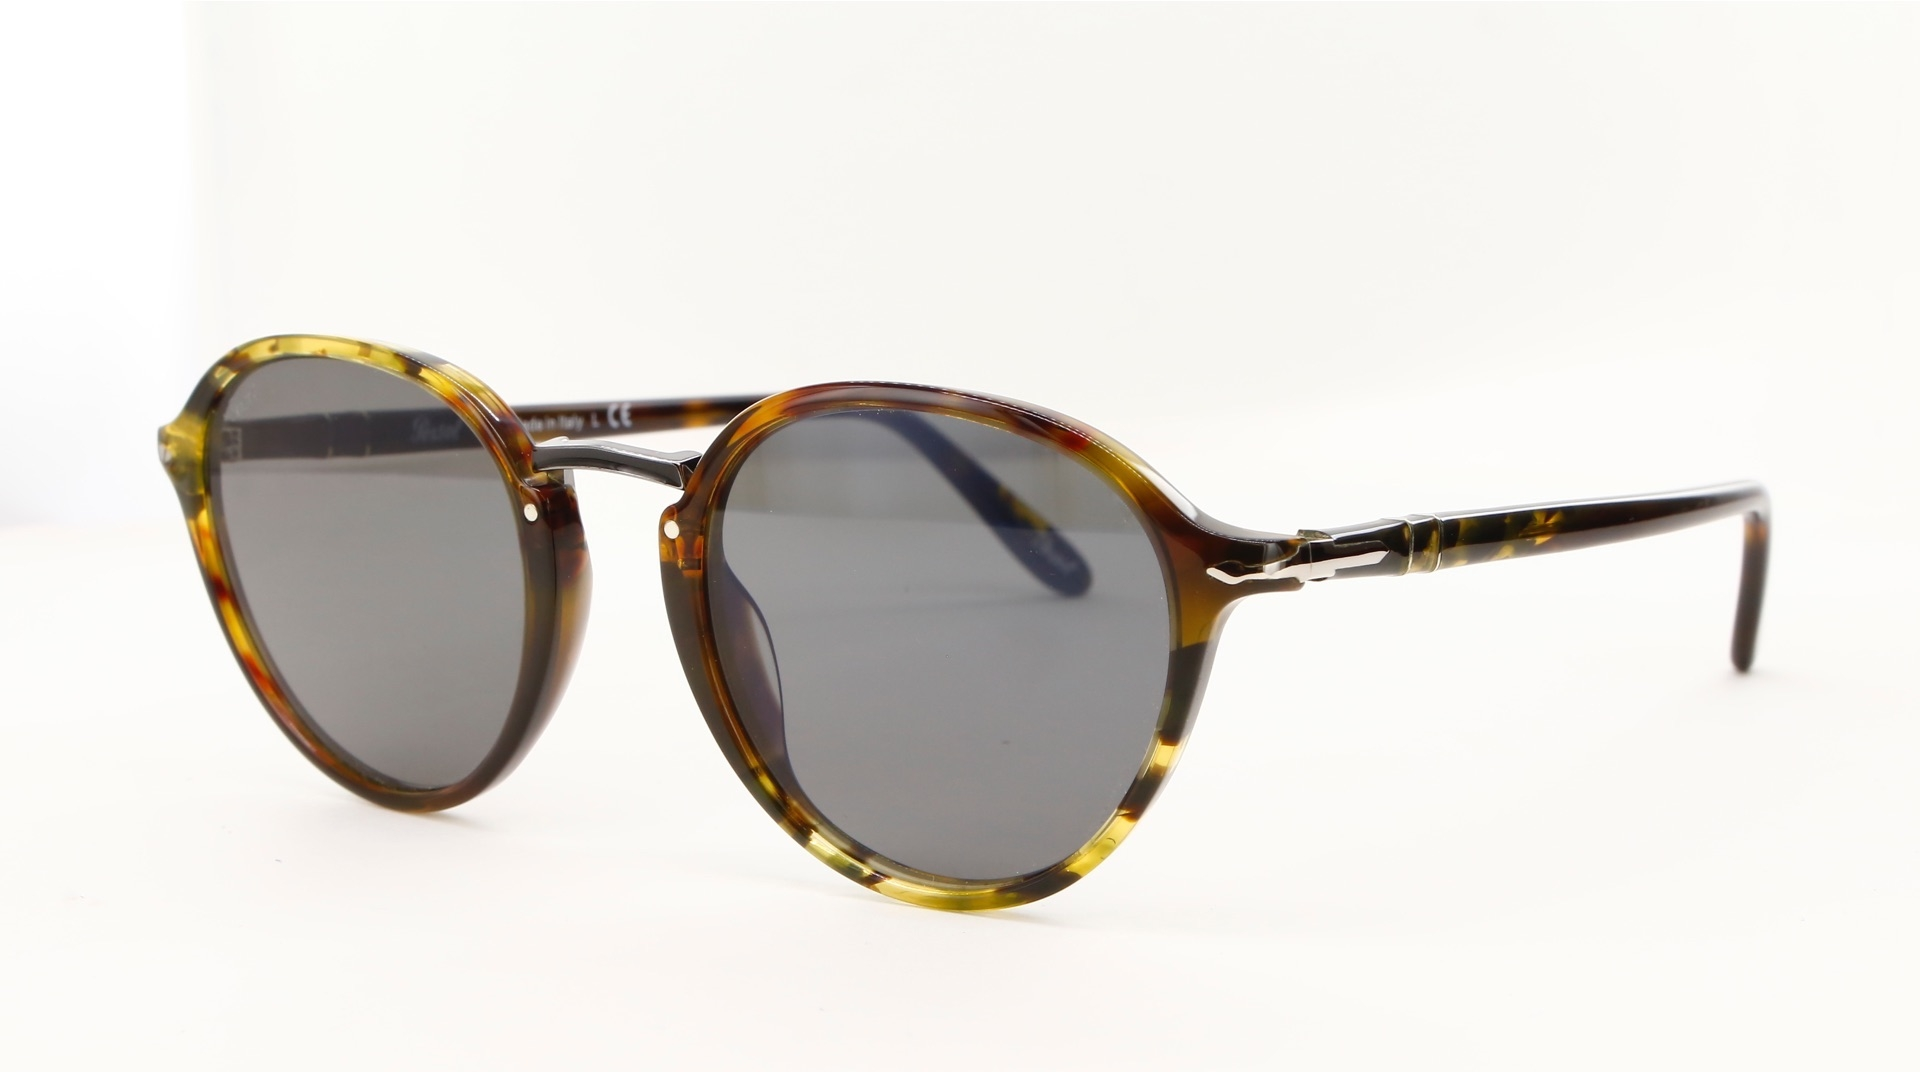 Persol - ref: 80845